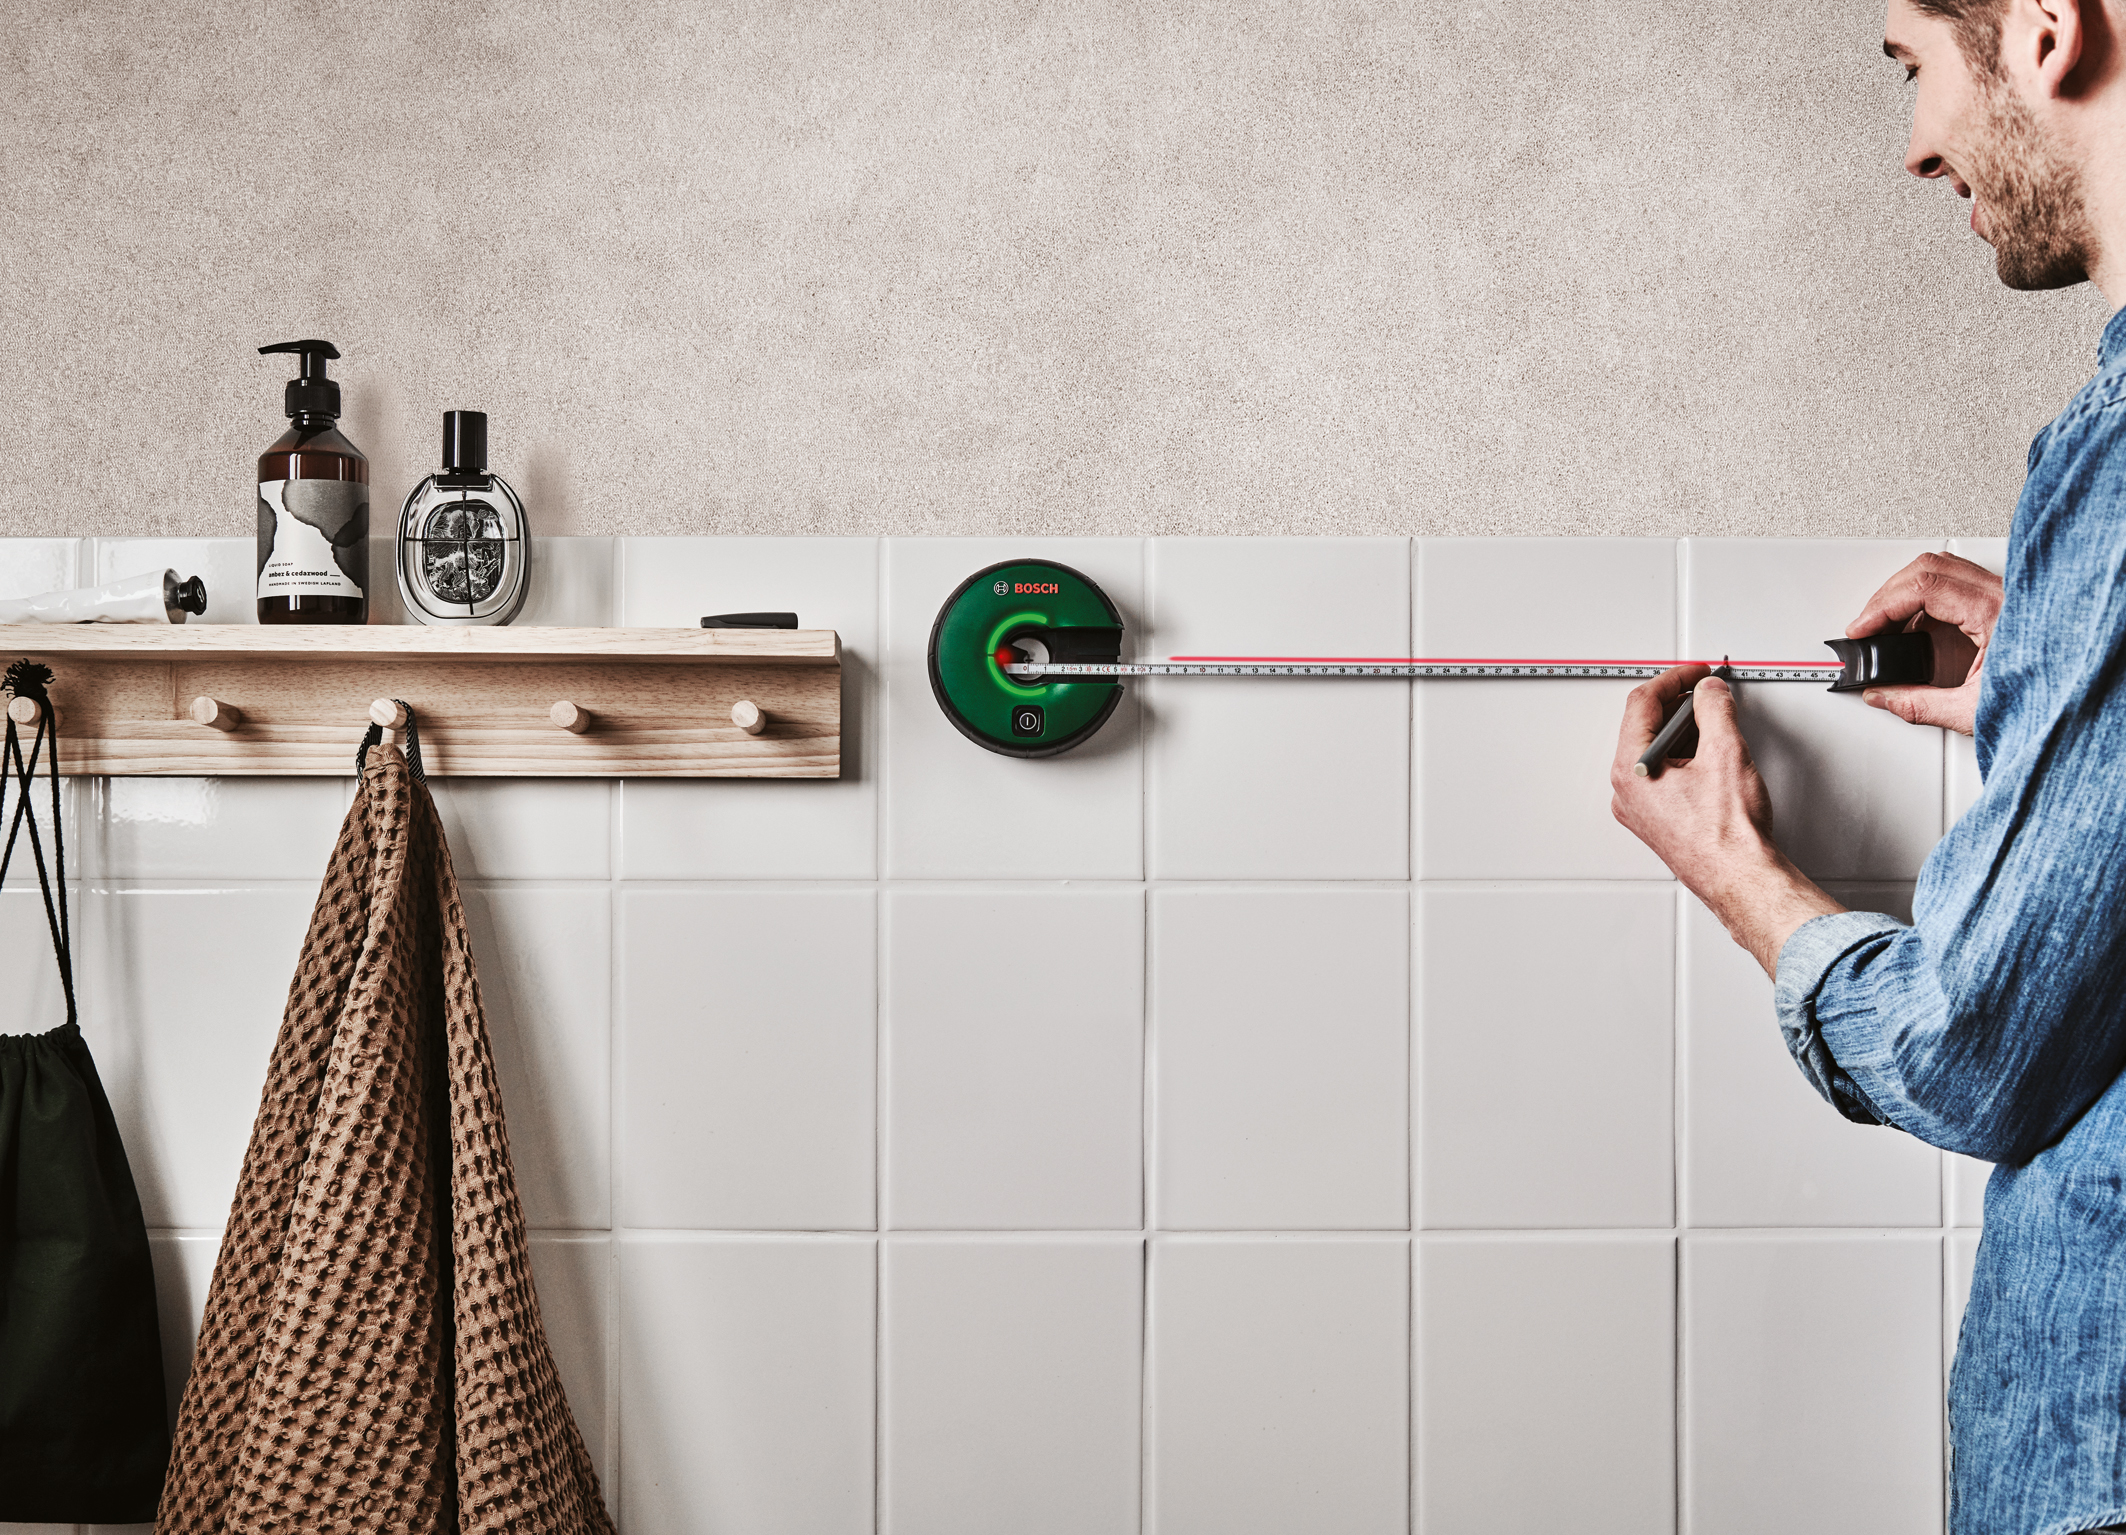 Easy attachment, alignment, measurement ‒ all in one: Line laser Atino from Bosch for DIY users